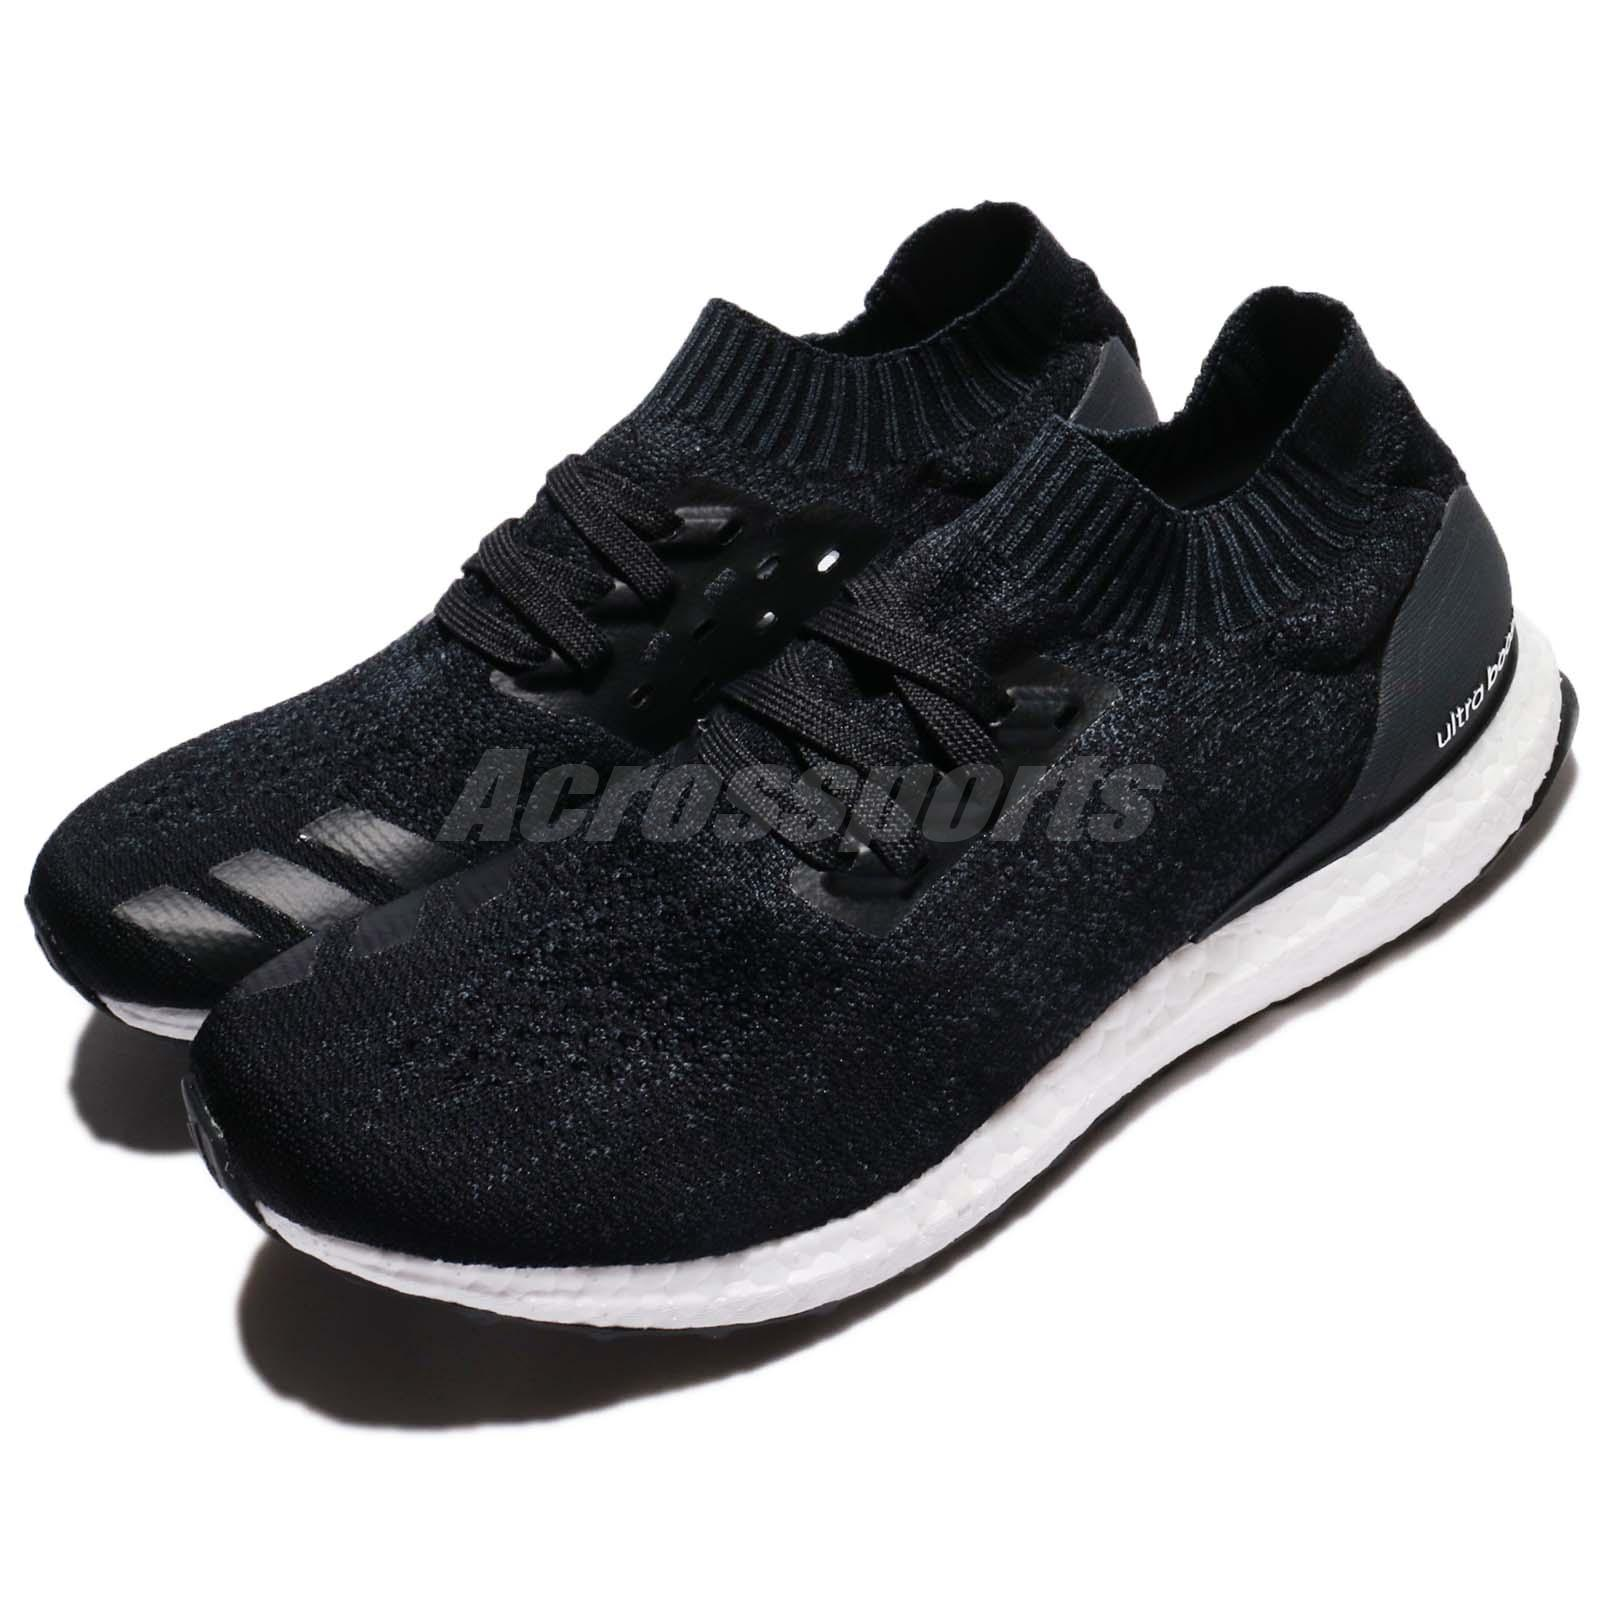 5de52e8d877 Details about adidas UltraBOOST Uncaged Black White Men Running Shoes  Sneakers Trainers DA9164